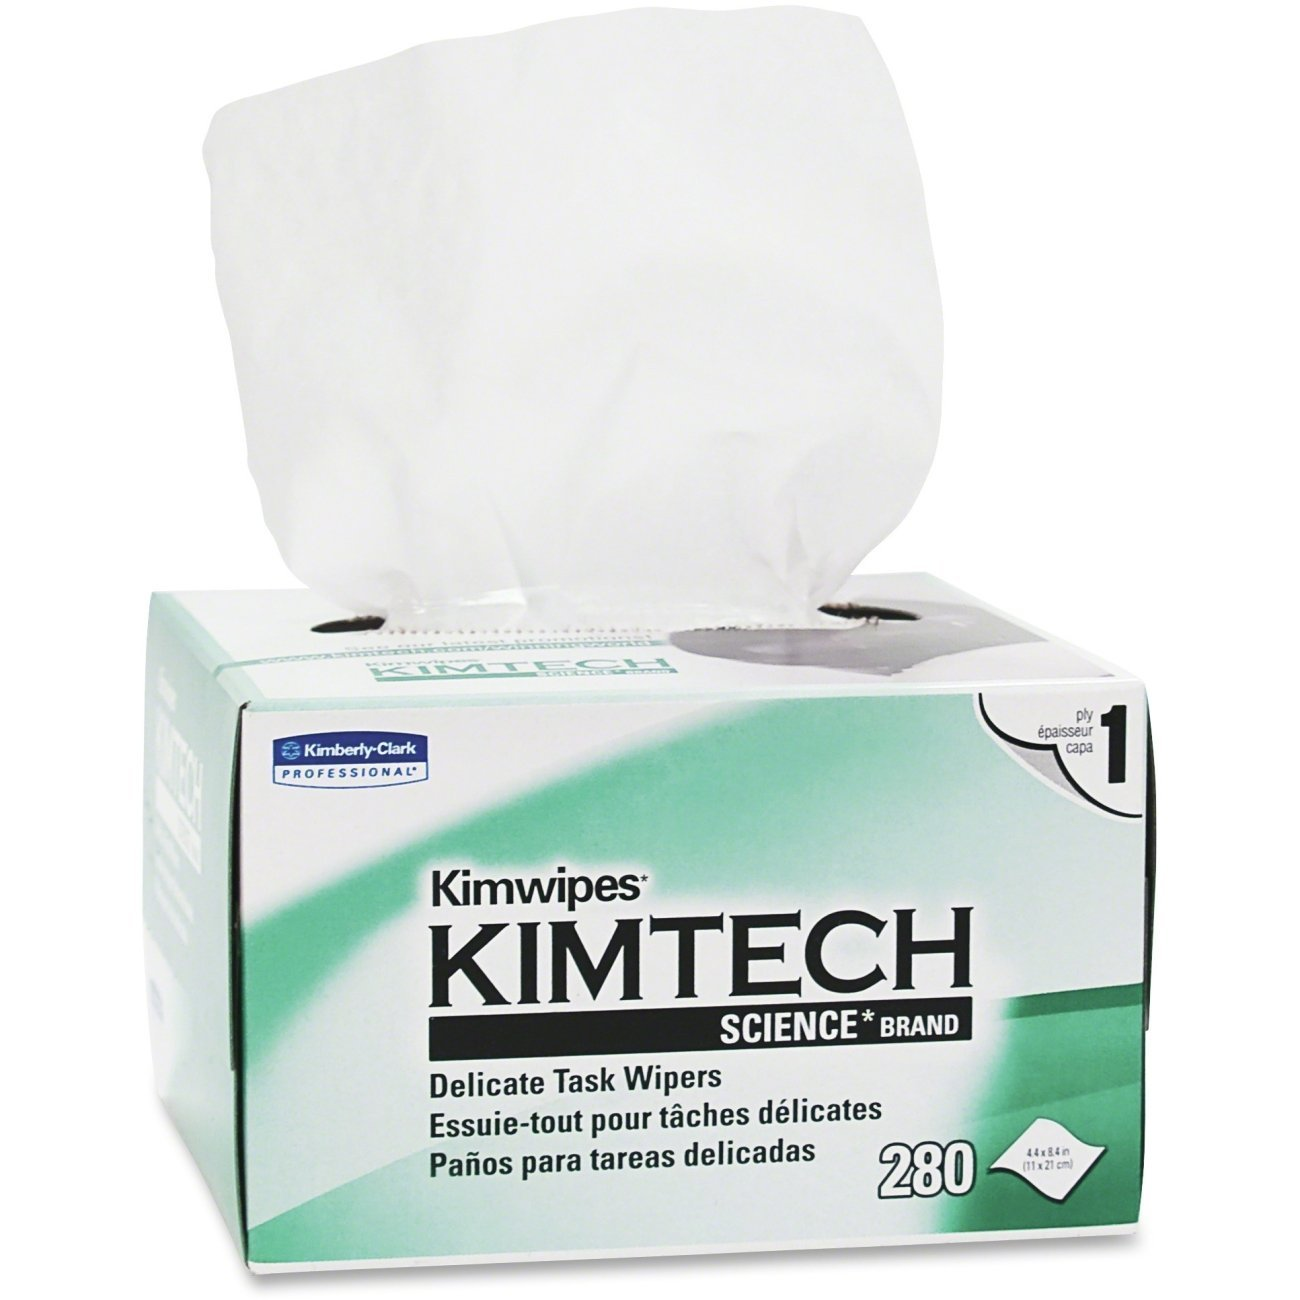 Kimtech Science Task Wipes Six Pack Kimwipes KCC34155-06 (Original Version)